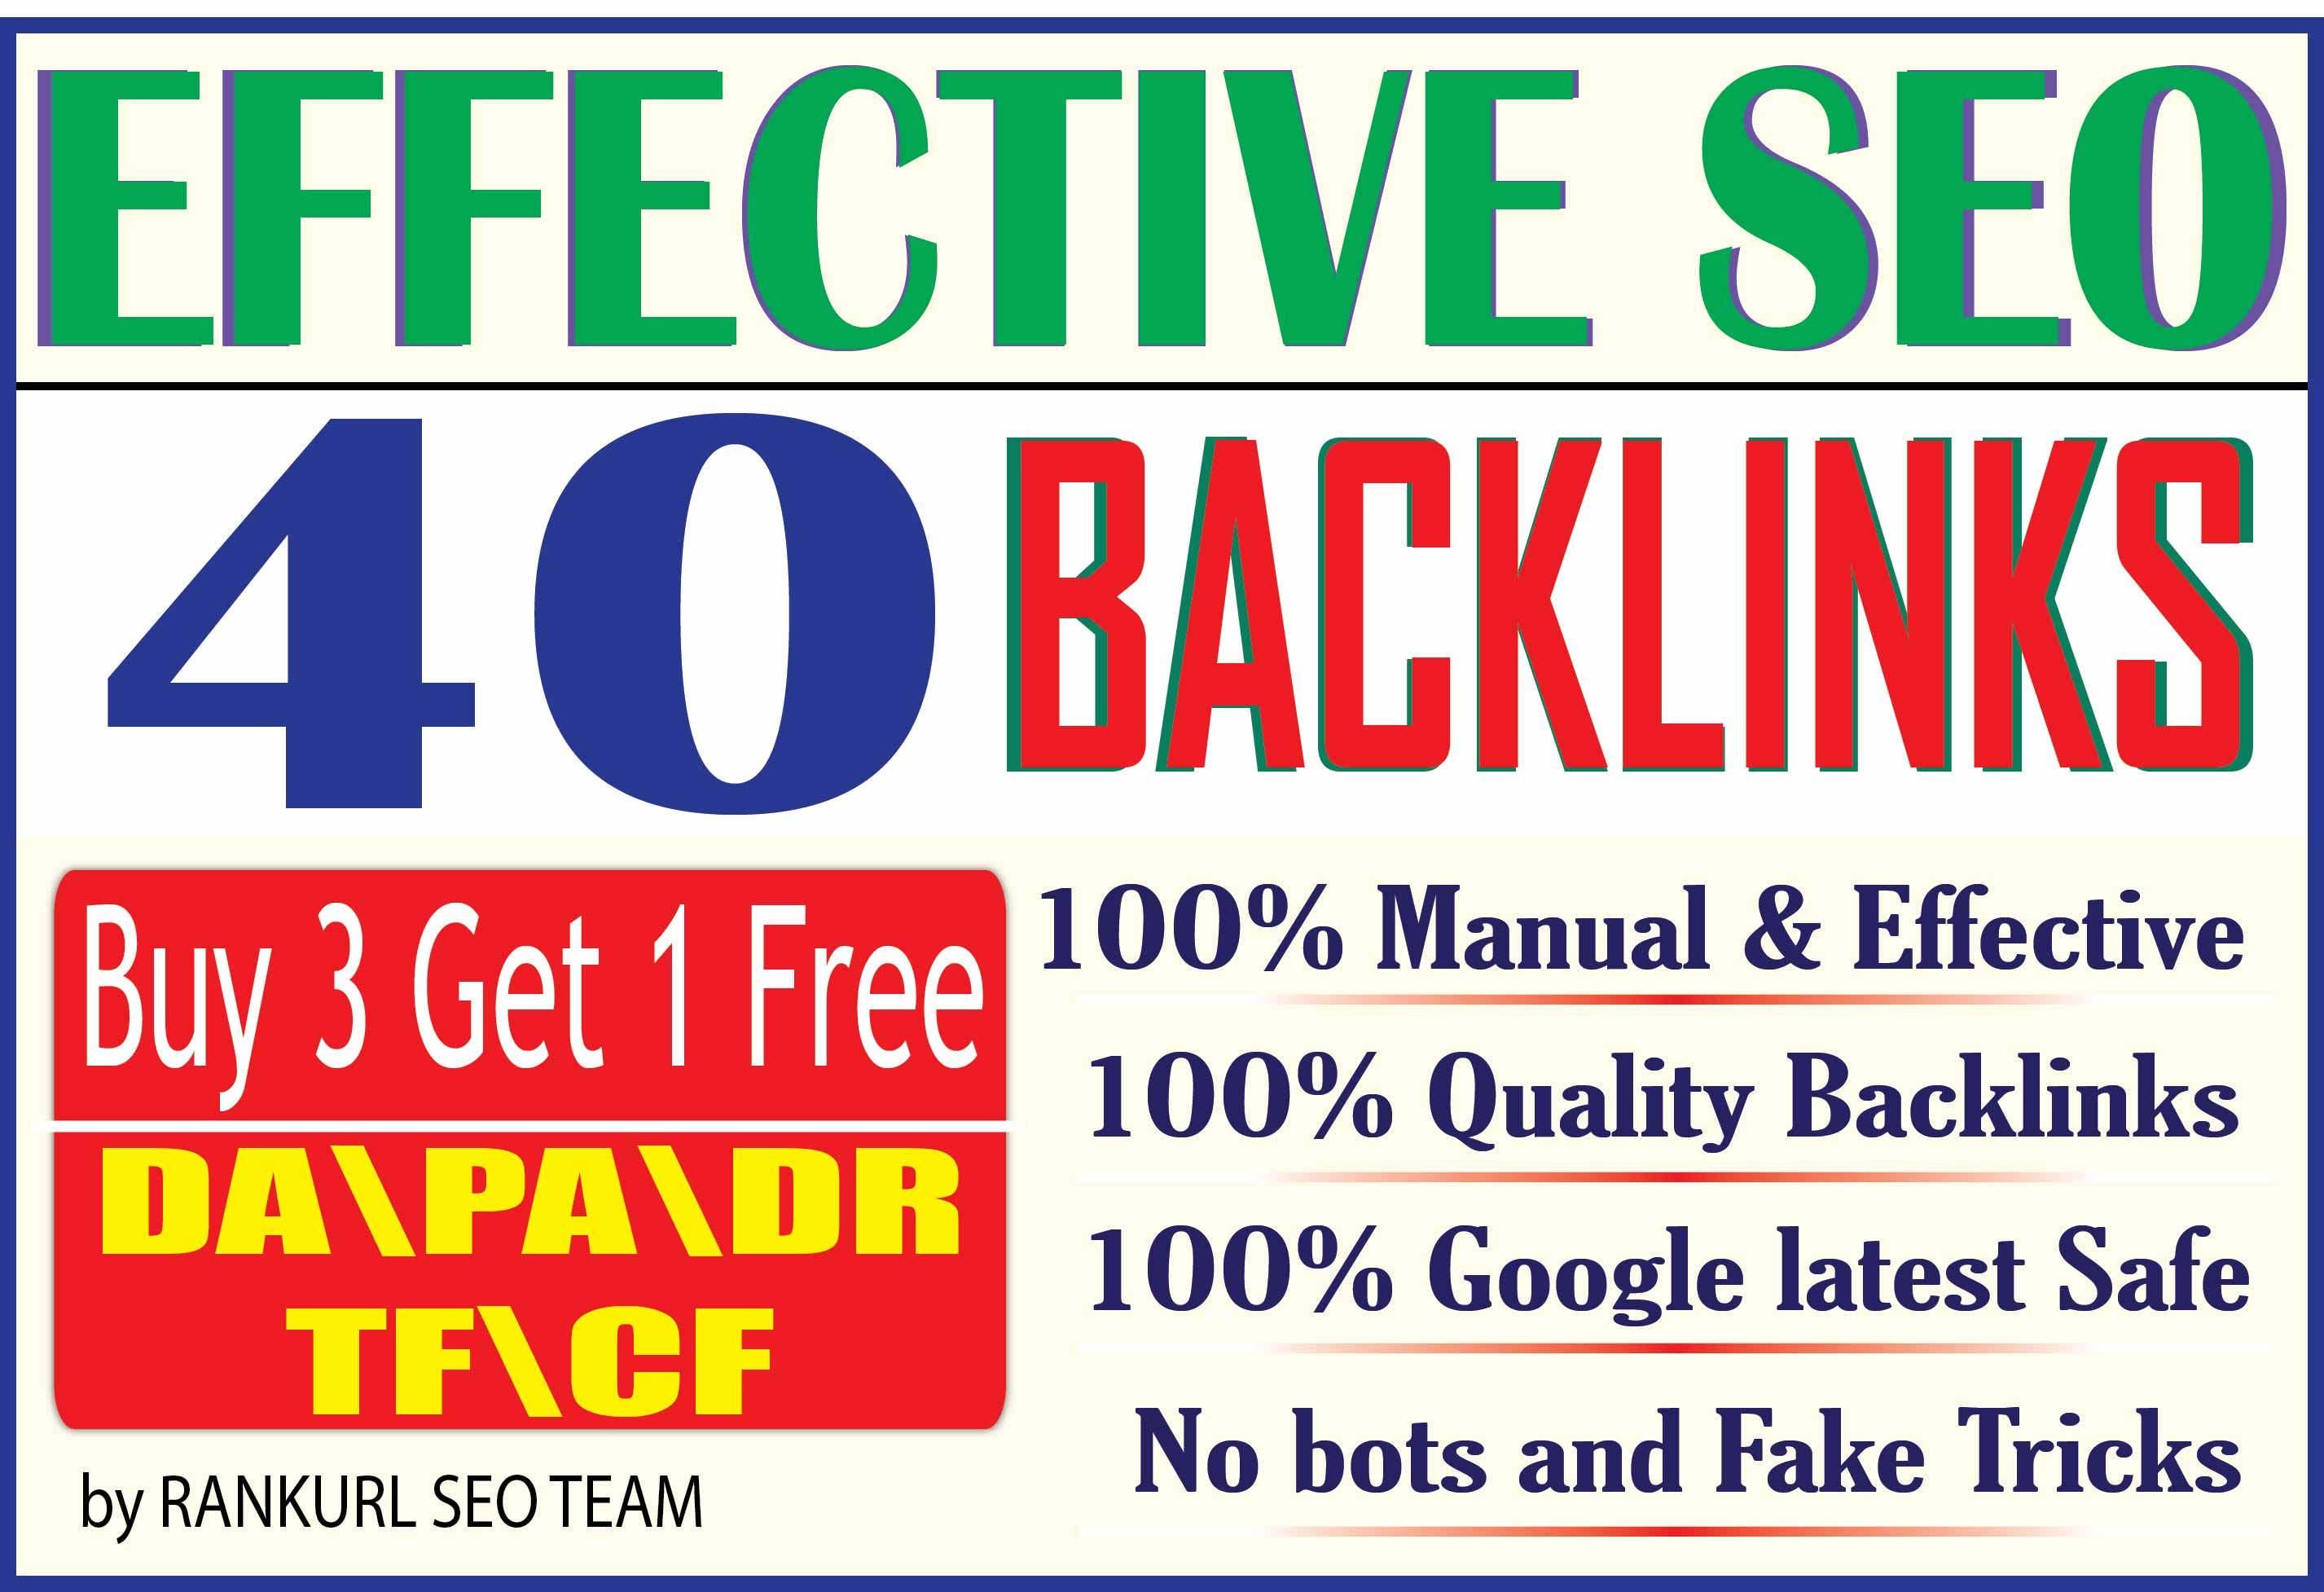 Skyrocket your Ranking by 40 Manual High DA PA DR TF CF SEO Backlinks